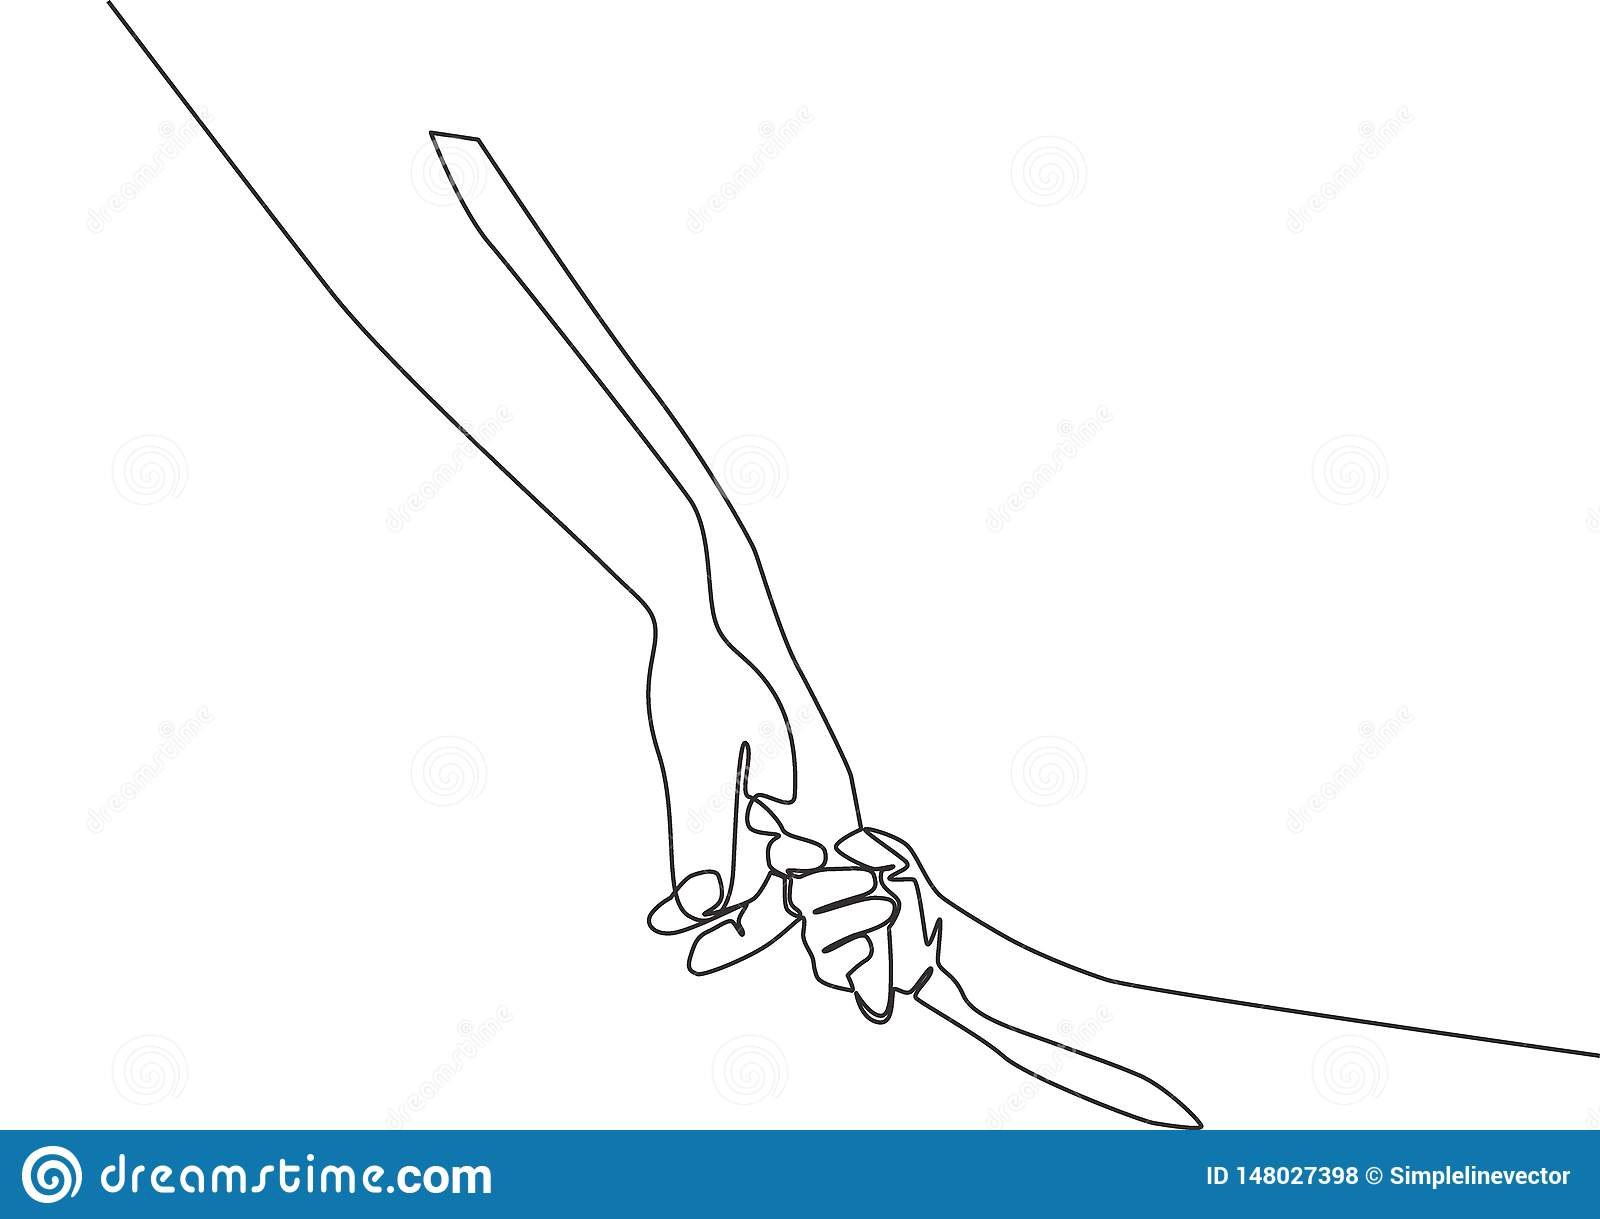 Single Line Draw Of Father Giving Hand To His Child Mother